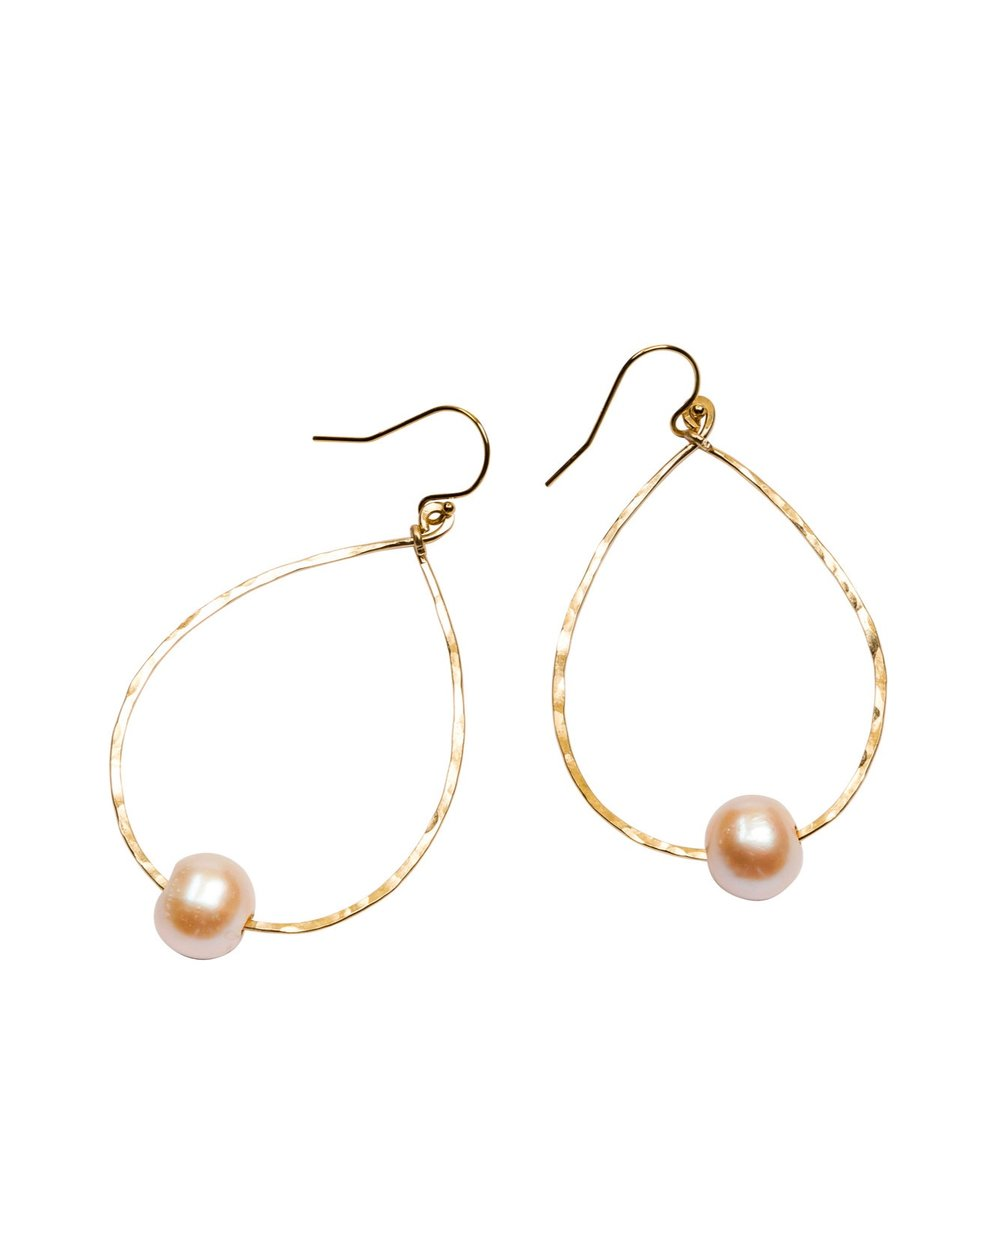 Pink-Peach Pearl Harbor Teardrop earrings